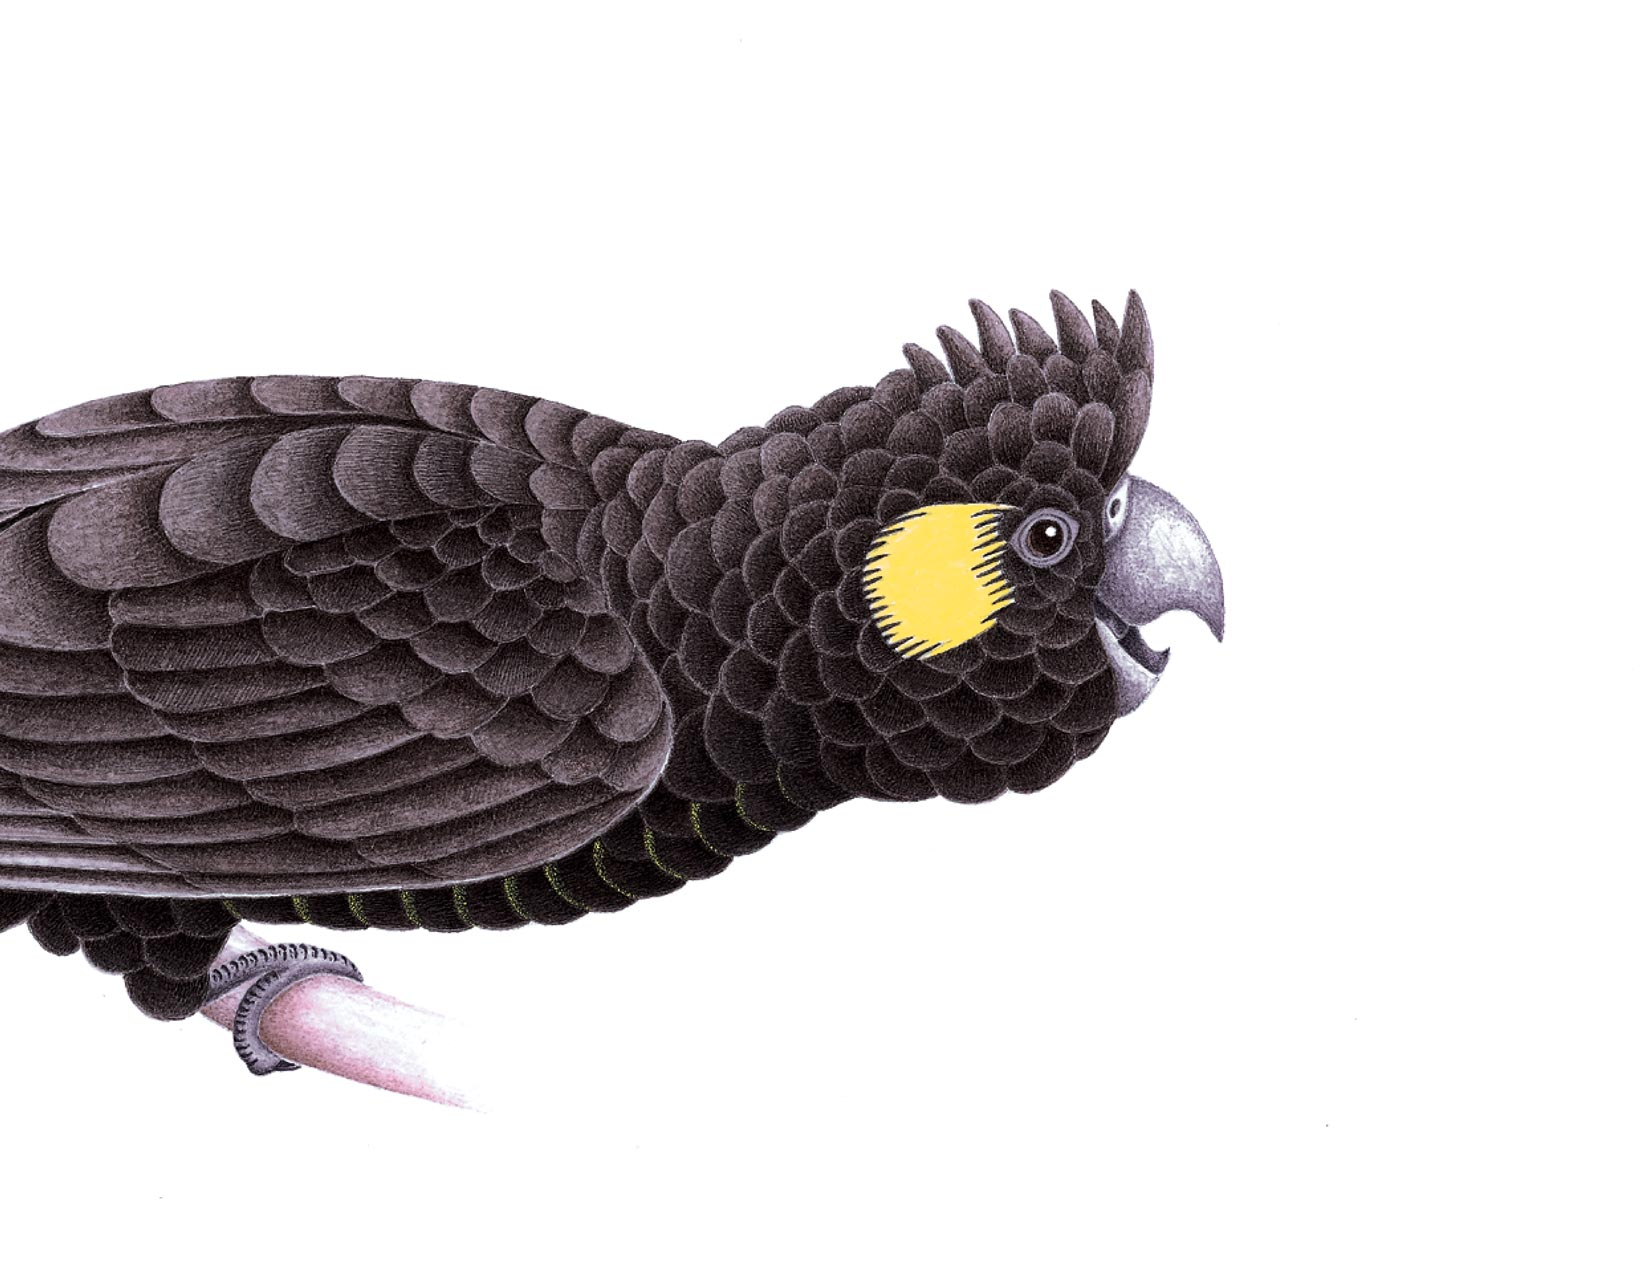 Tapanappa cockatoo illustration